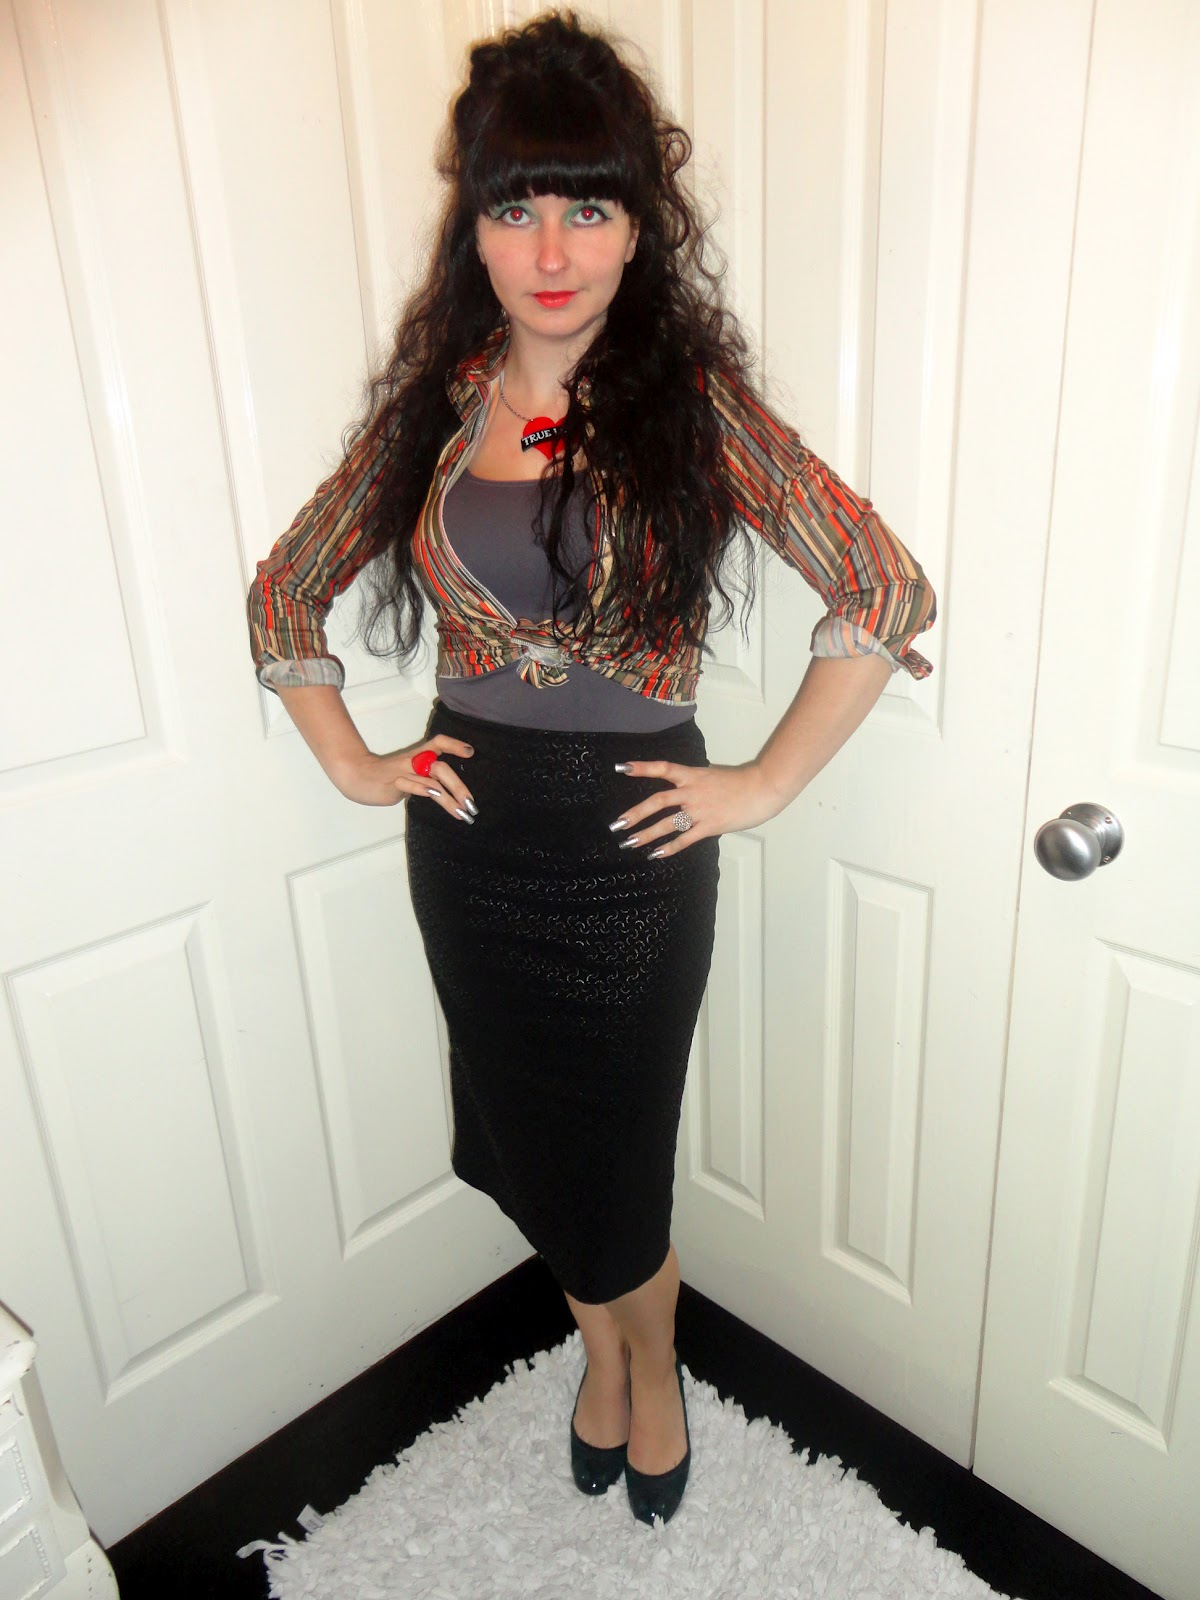 d6c2e25fe Happy Weekend eve peeps! Thank god the week is nearly up- its been a long  one for me! This outfit consists of a vintage 80s wet look pencil skirt  which I ...